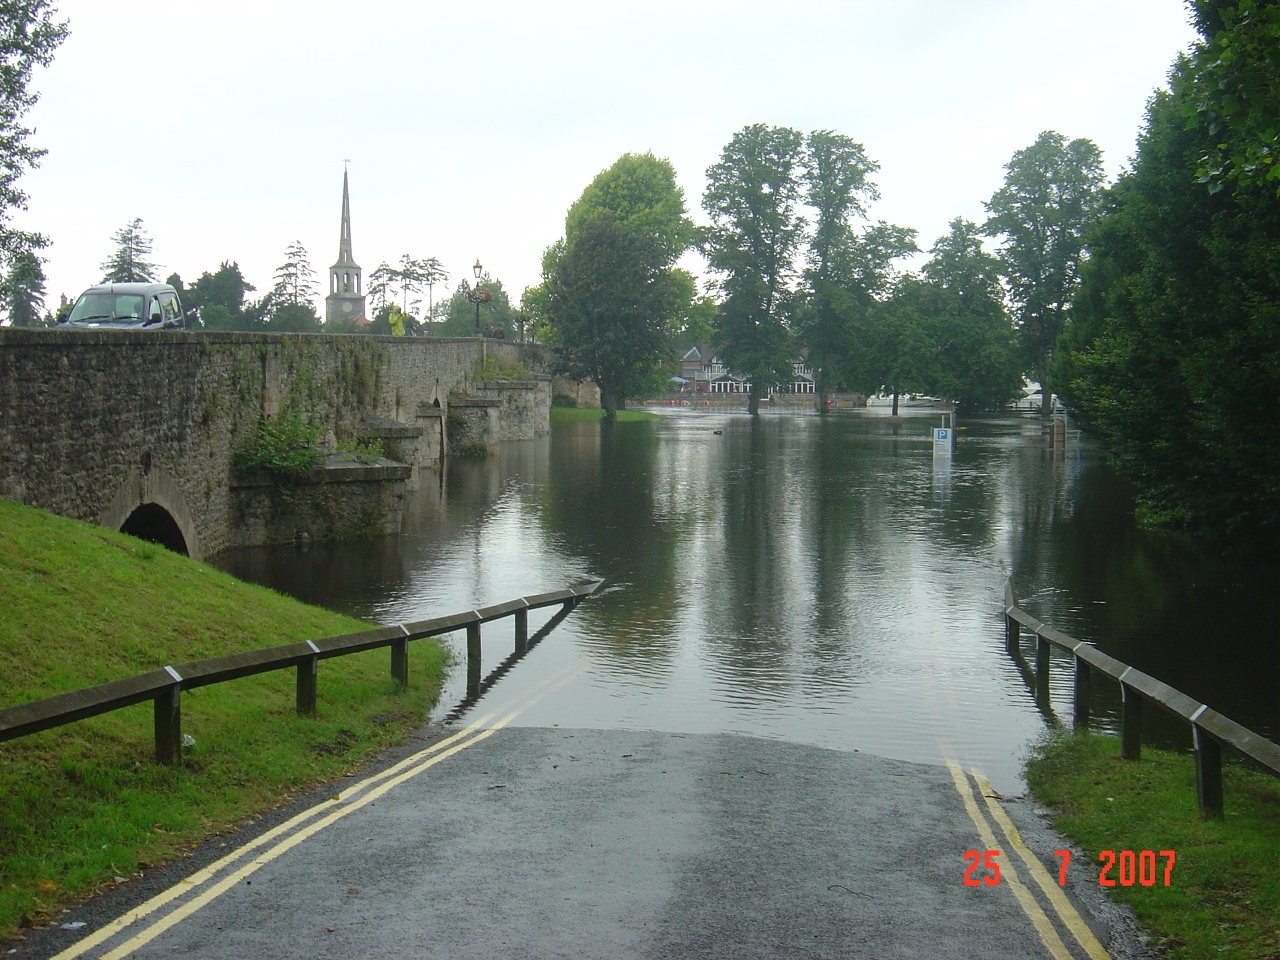 Flooding at Crowmarsh on the River Thames - Image by Gwyn Rees